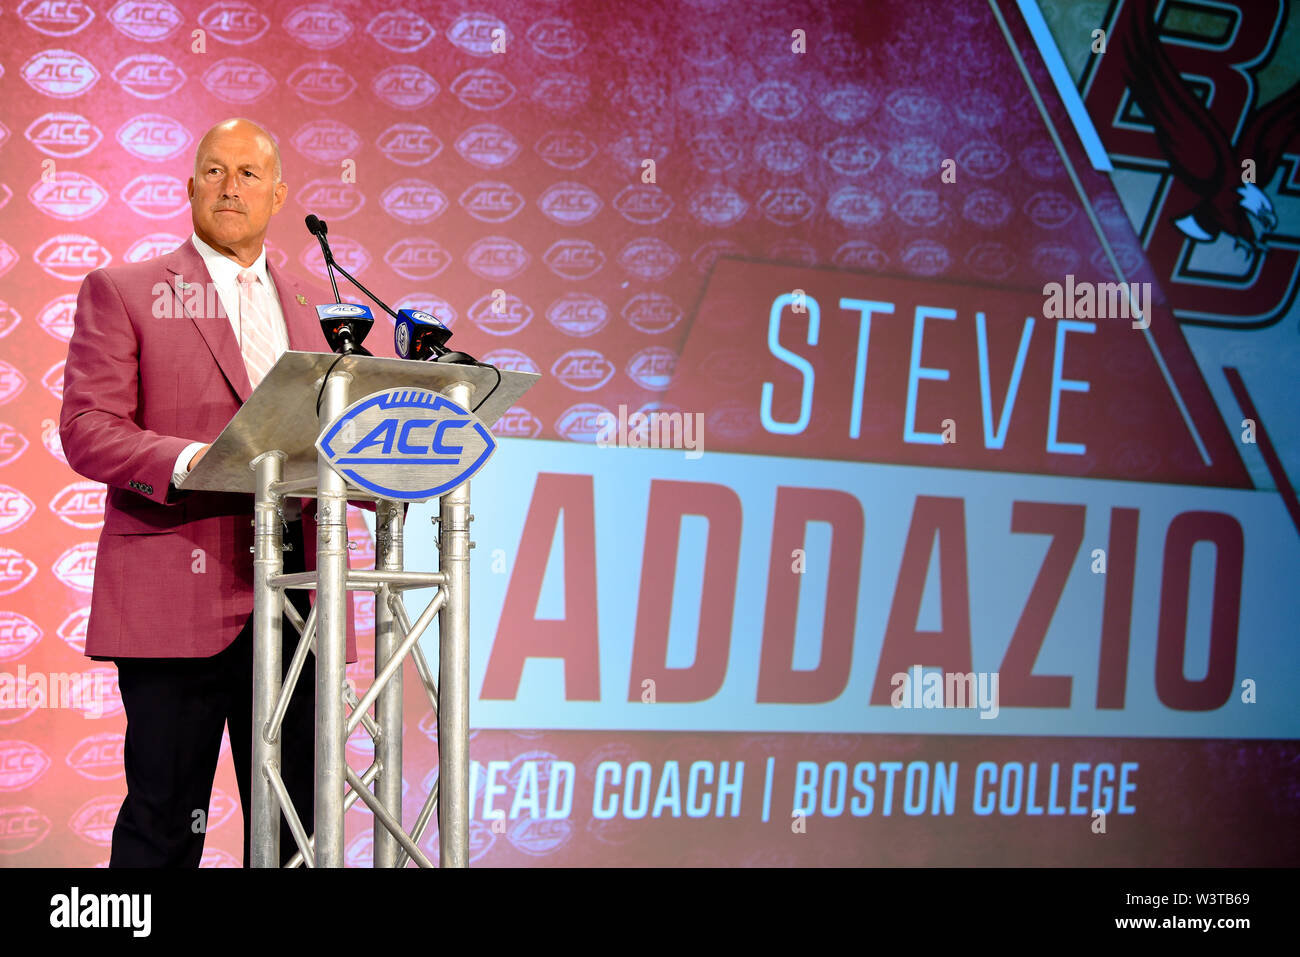 Charlotte, North Carolina, USA. 17th July, 2019. Boston College Head Coach STEVE ADDAVIO speaking to reporters during the ACC Atlantic Division Coach/Student interviews on July 17, 2019 at the Westin Hotels & Resorts in Charlotte, N.C. Credit: Ed Clemente/ZUMA Wire/Alamy Live News - Stock Image